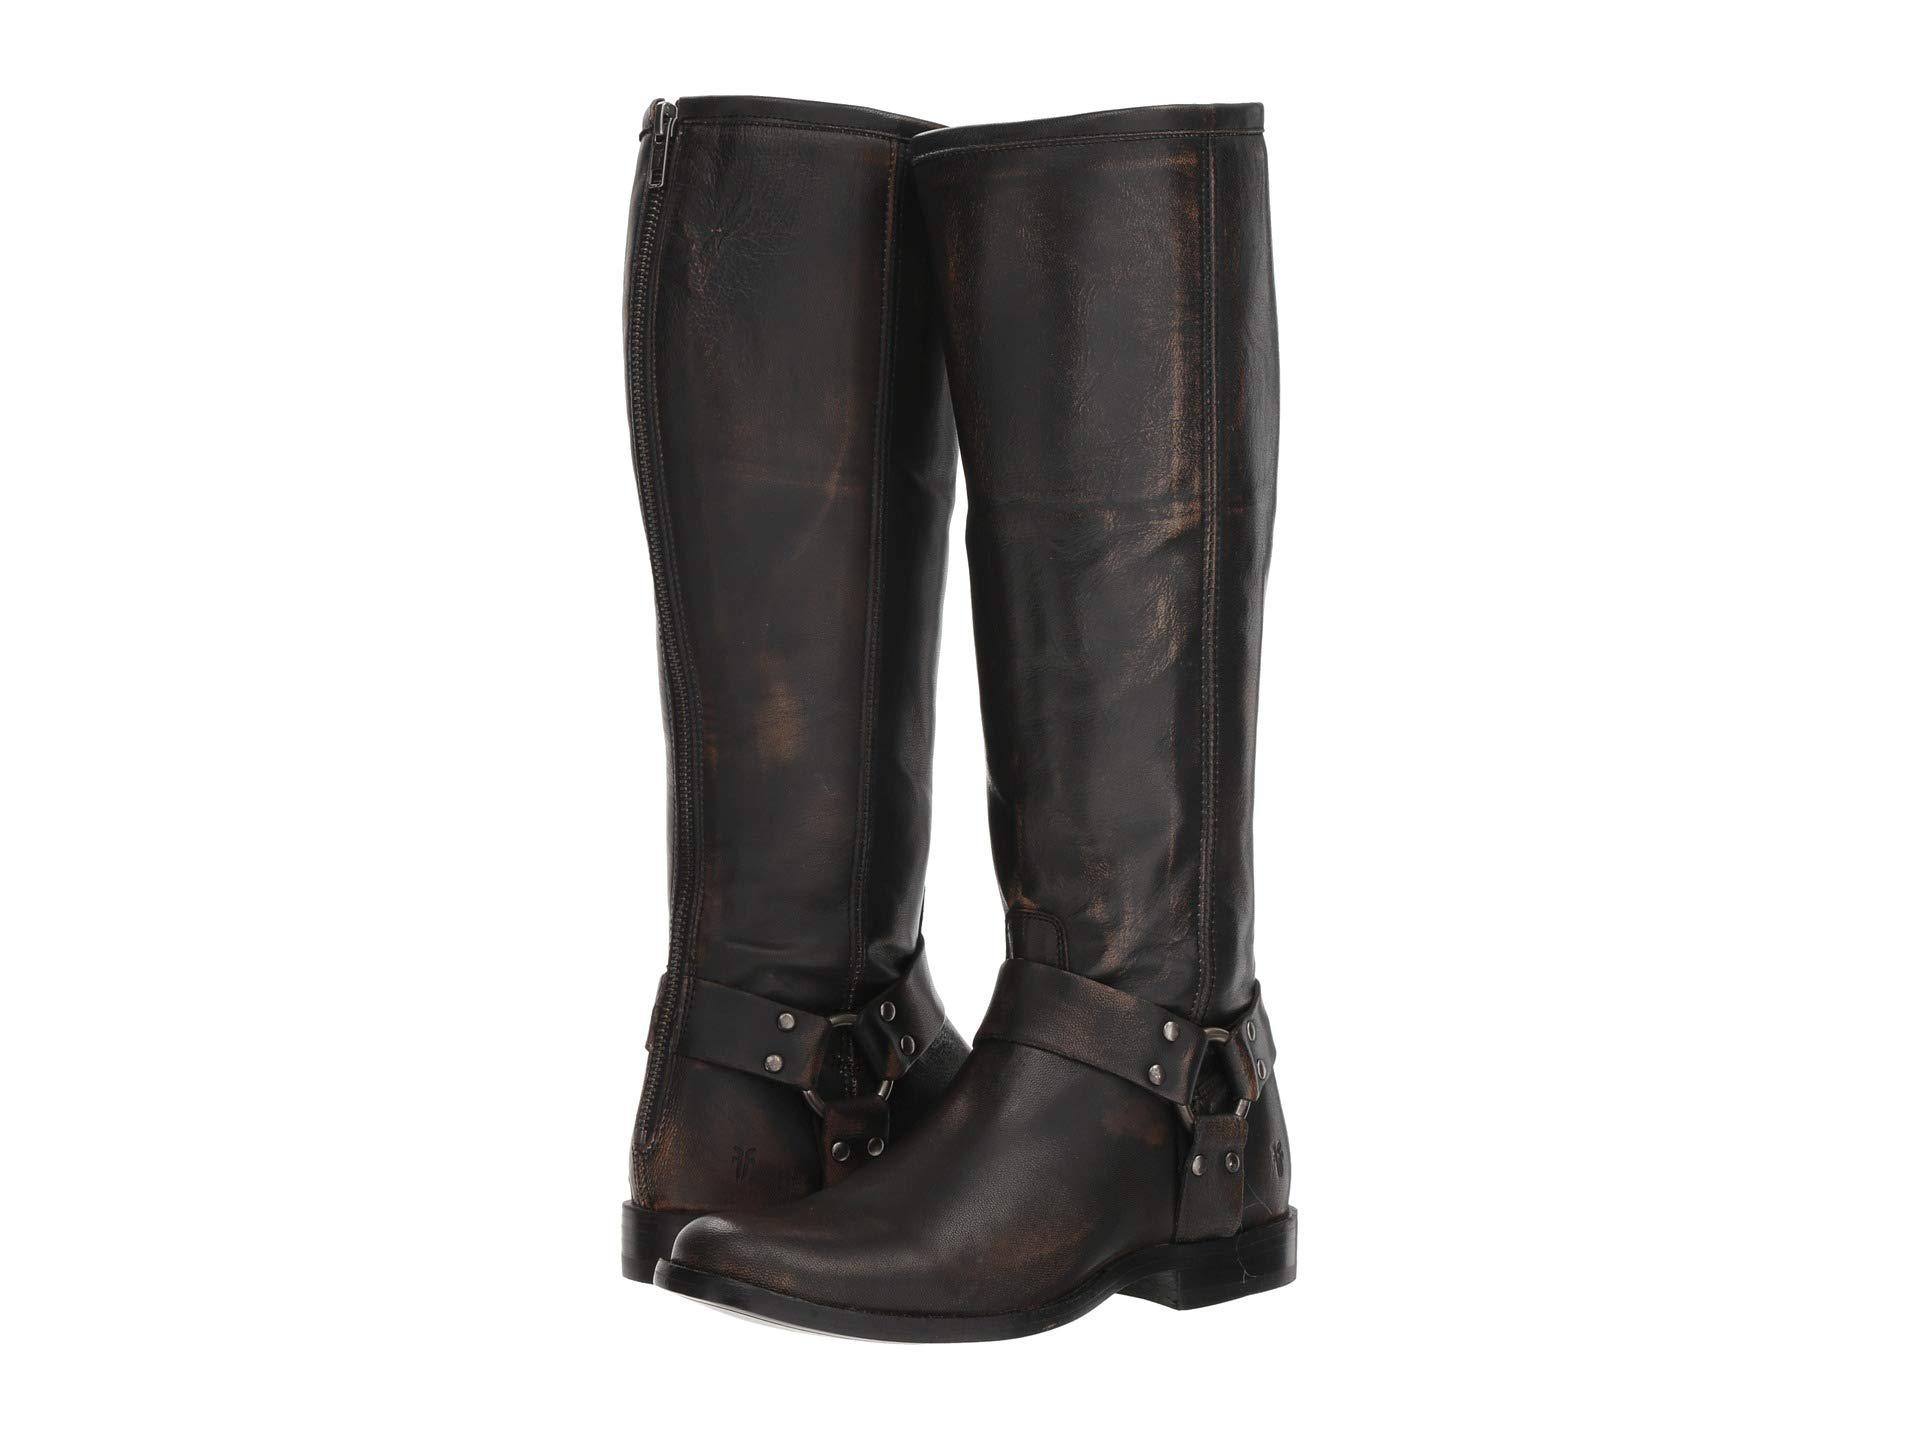 d60780d295c Lyst - Frye Phillip Harness Tall (dark Brown Extended Brush-off ...